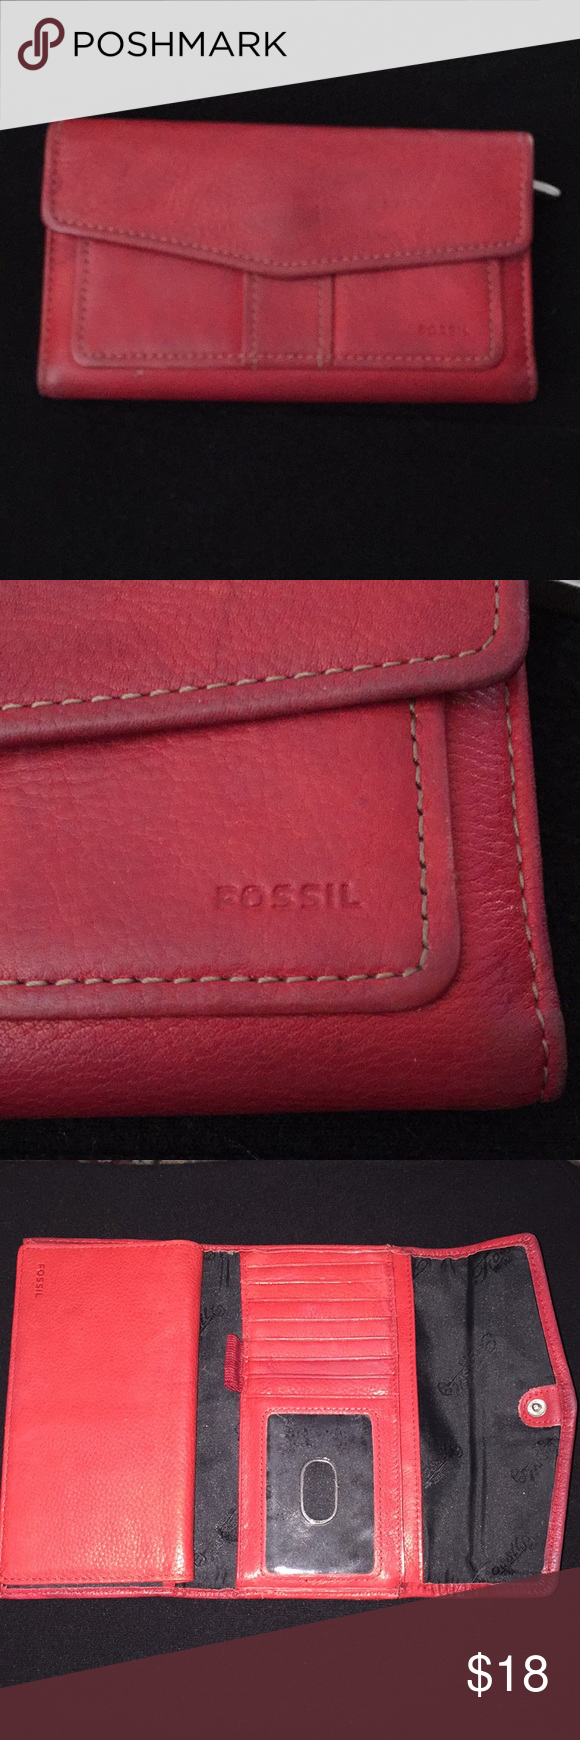 Fossil Wallet Used with normal wear and tear. Please ask